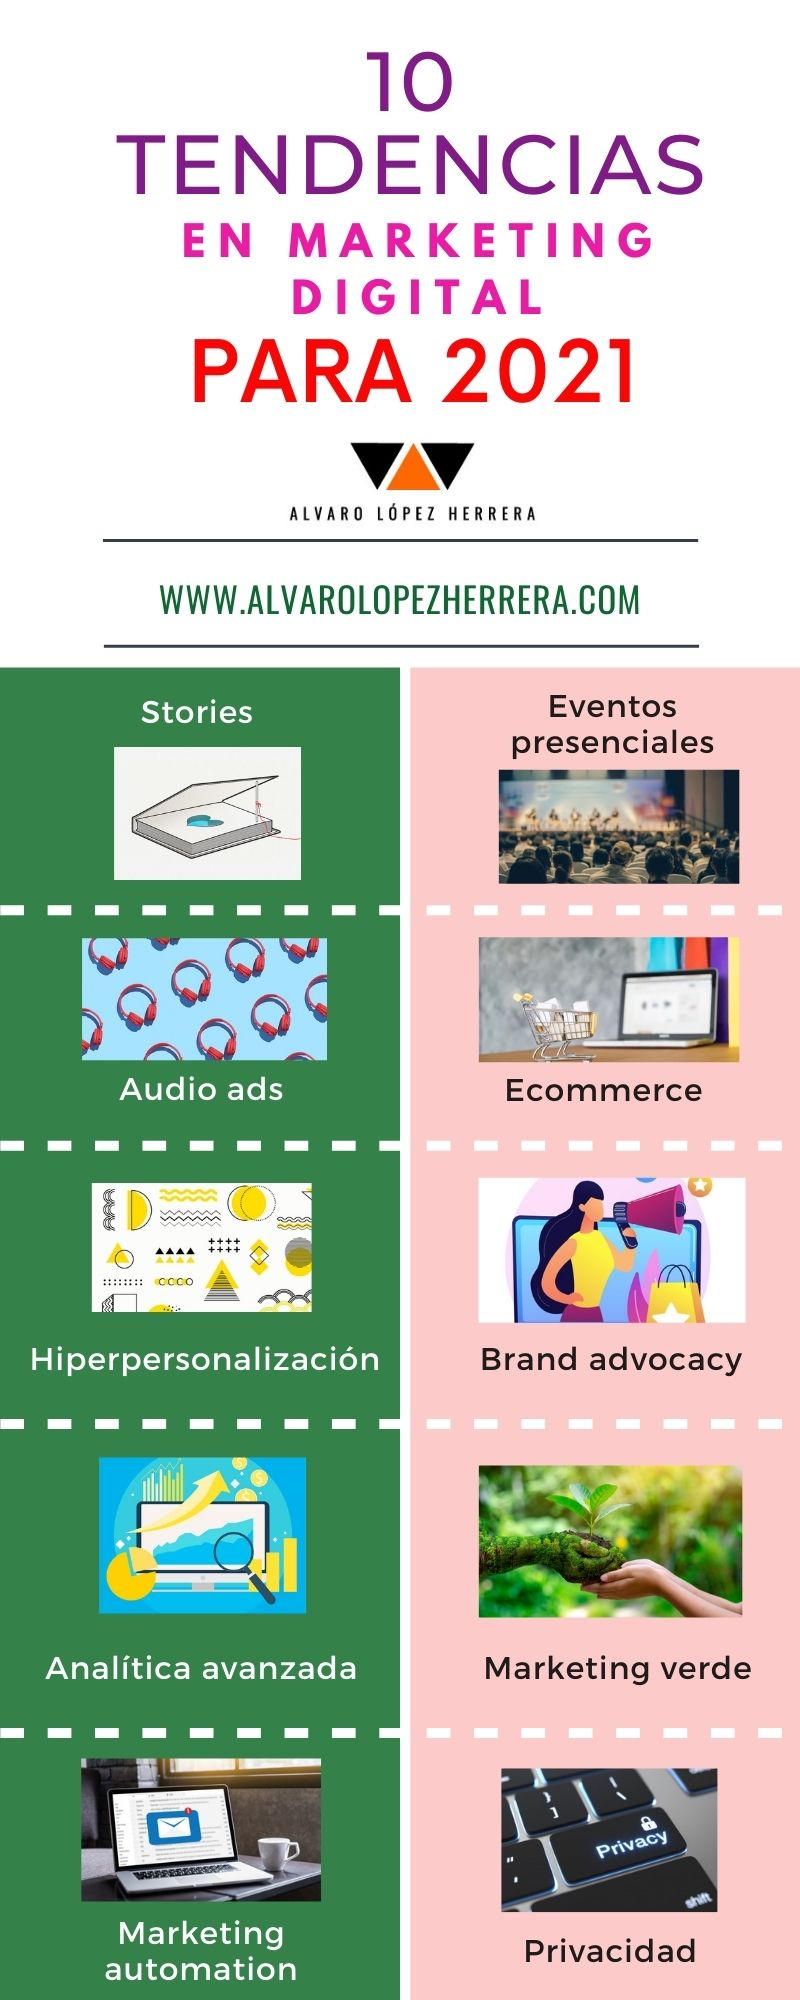 Tendencias en marketing digital para el 2021